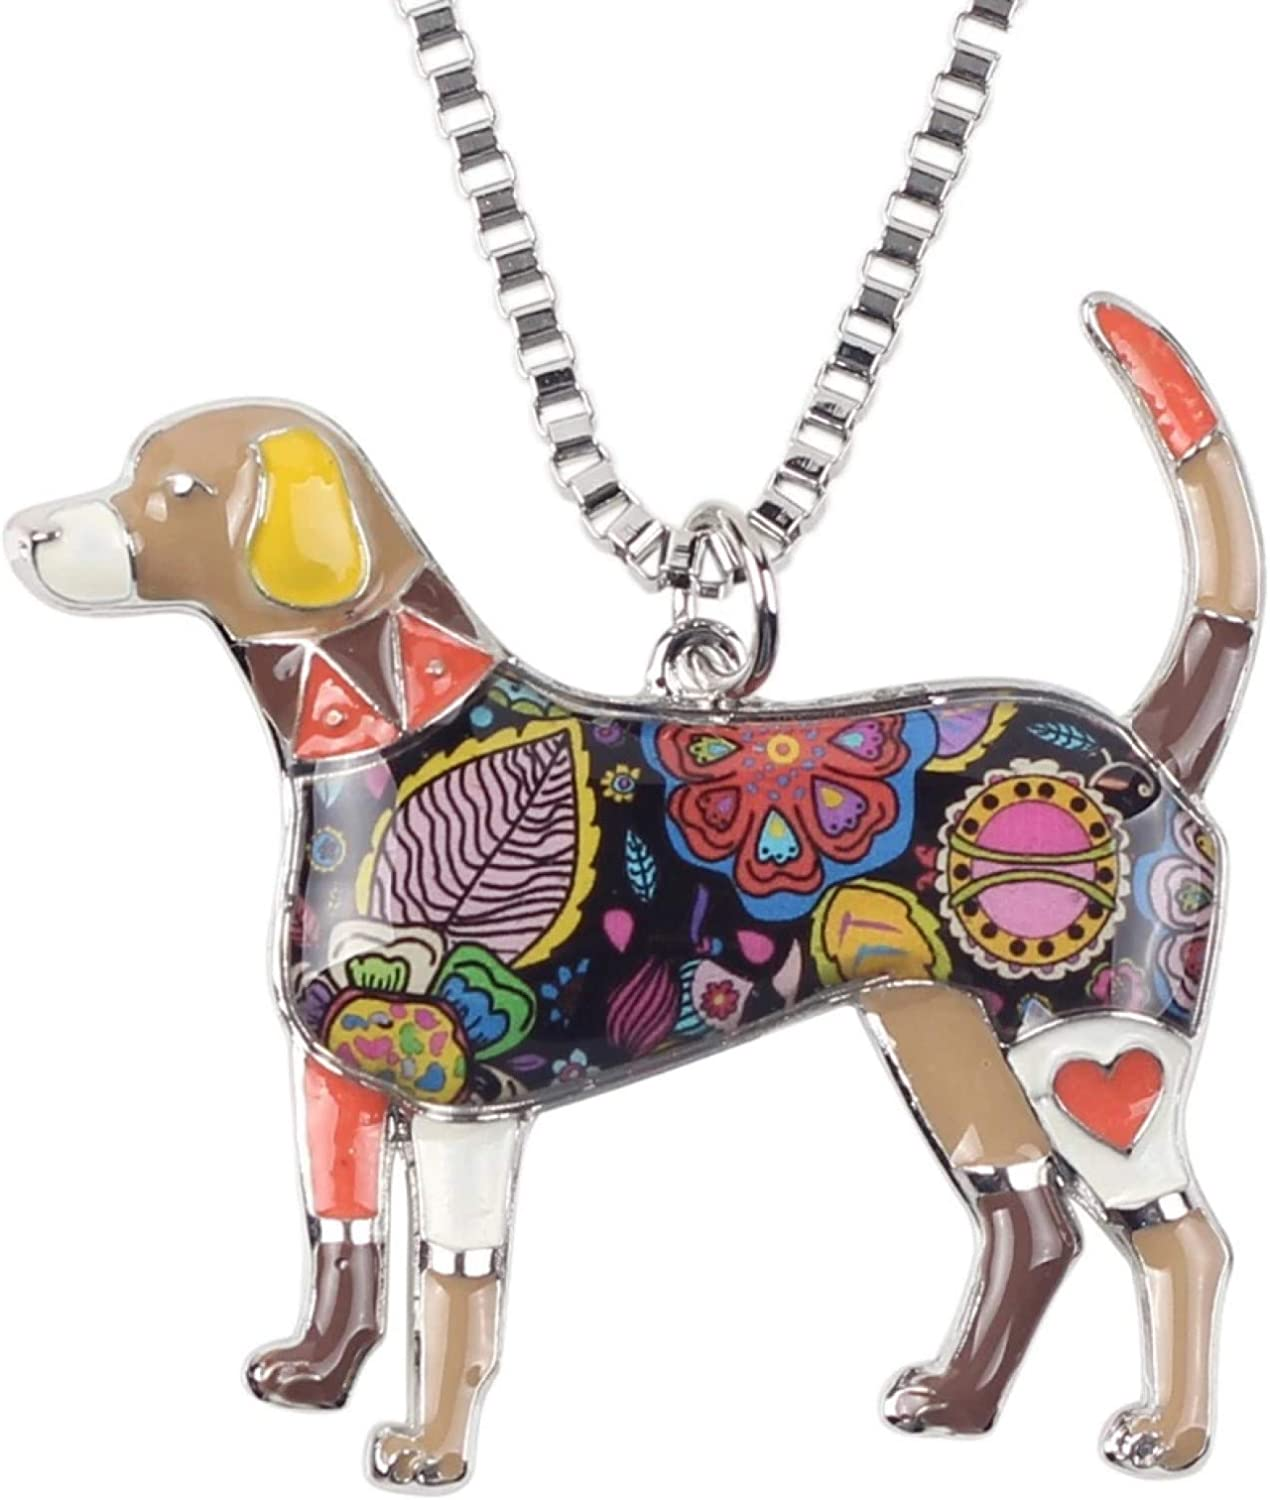 Necklace Pendant Metal Alloy Enamel Beagle Choker Necklace Chain Collar Pendant Fashion New Jewelry for Women Christmas Birthday Gift